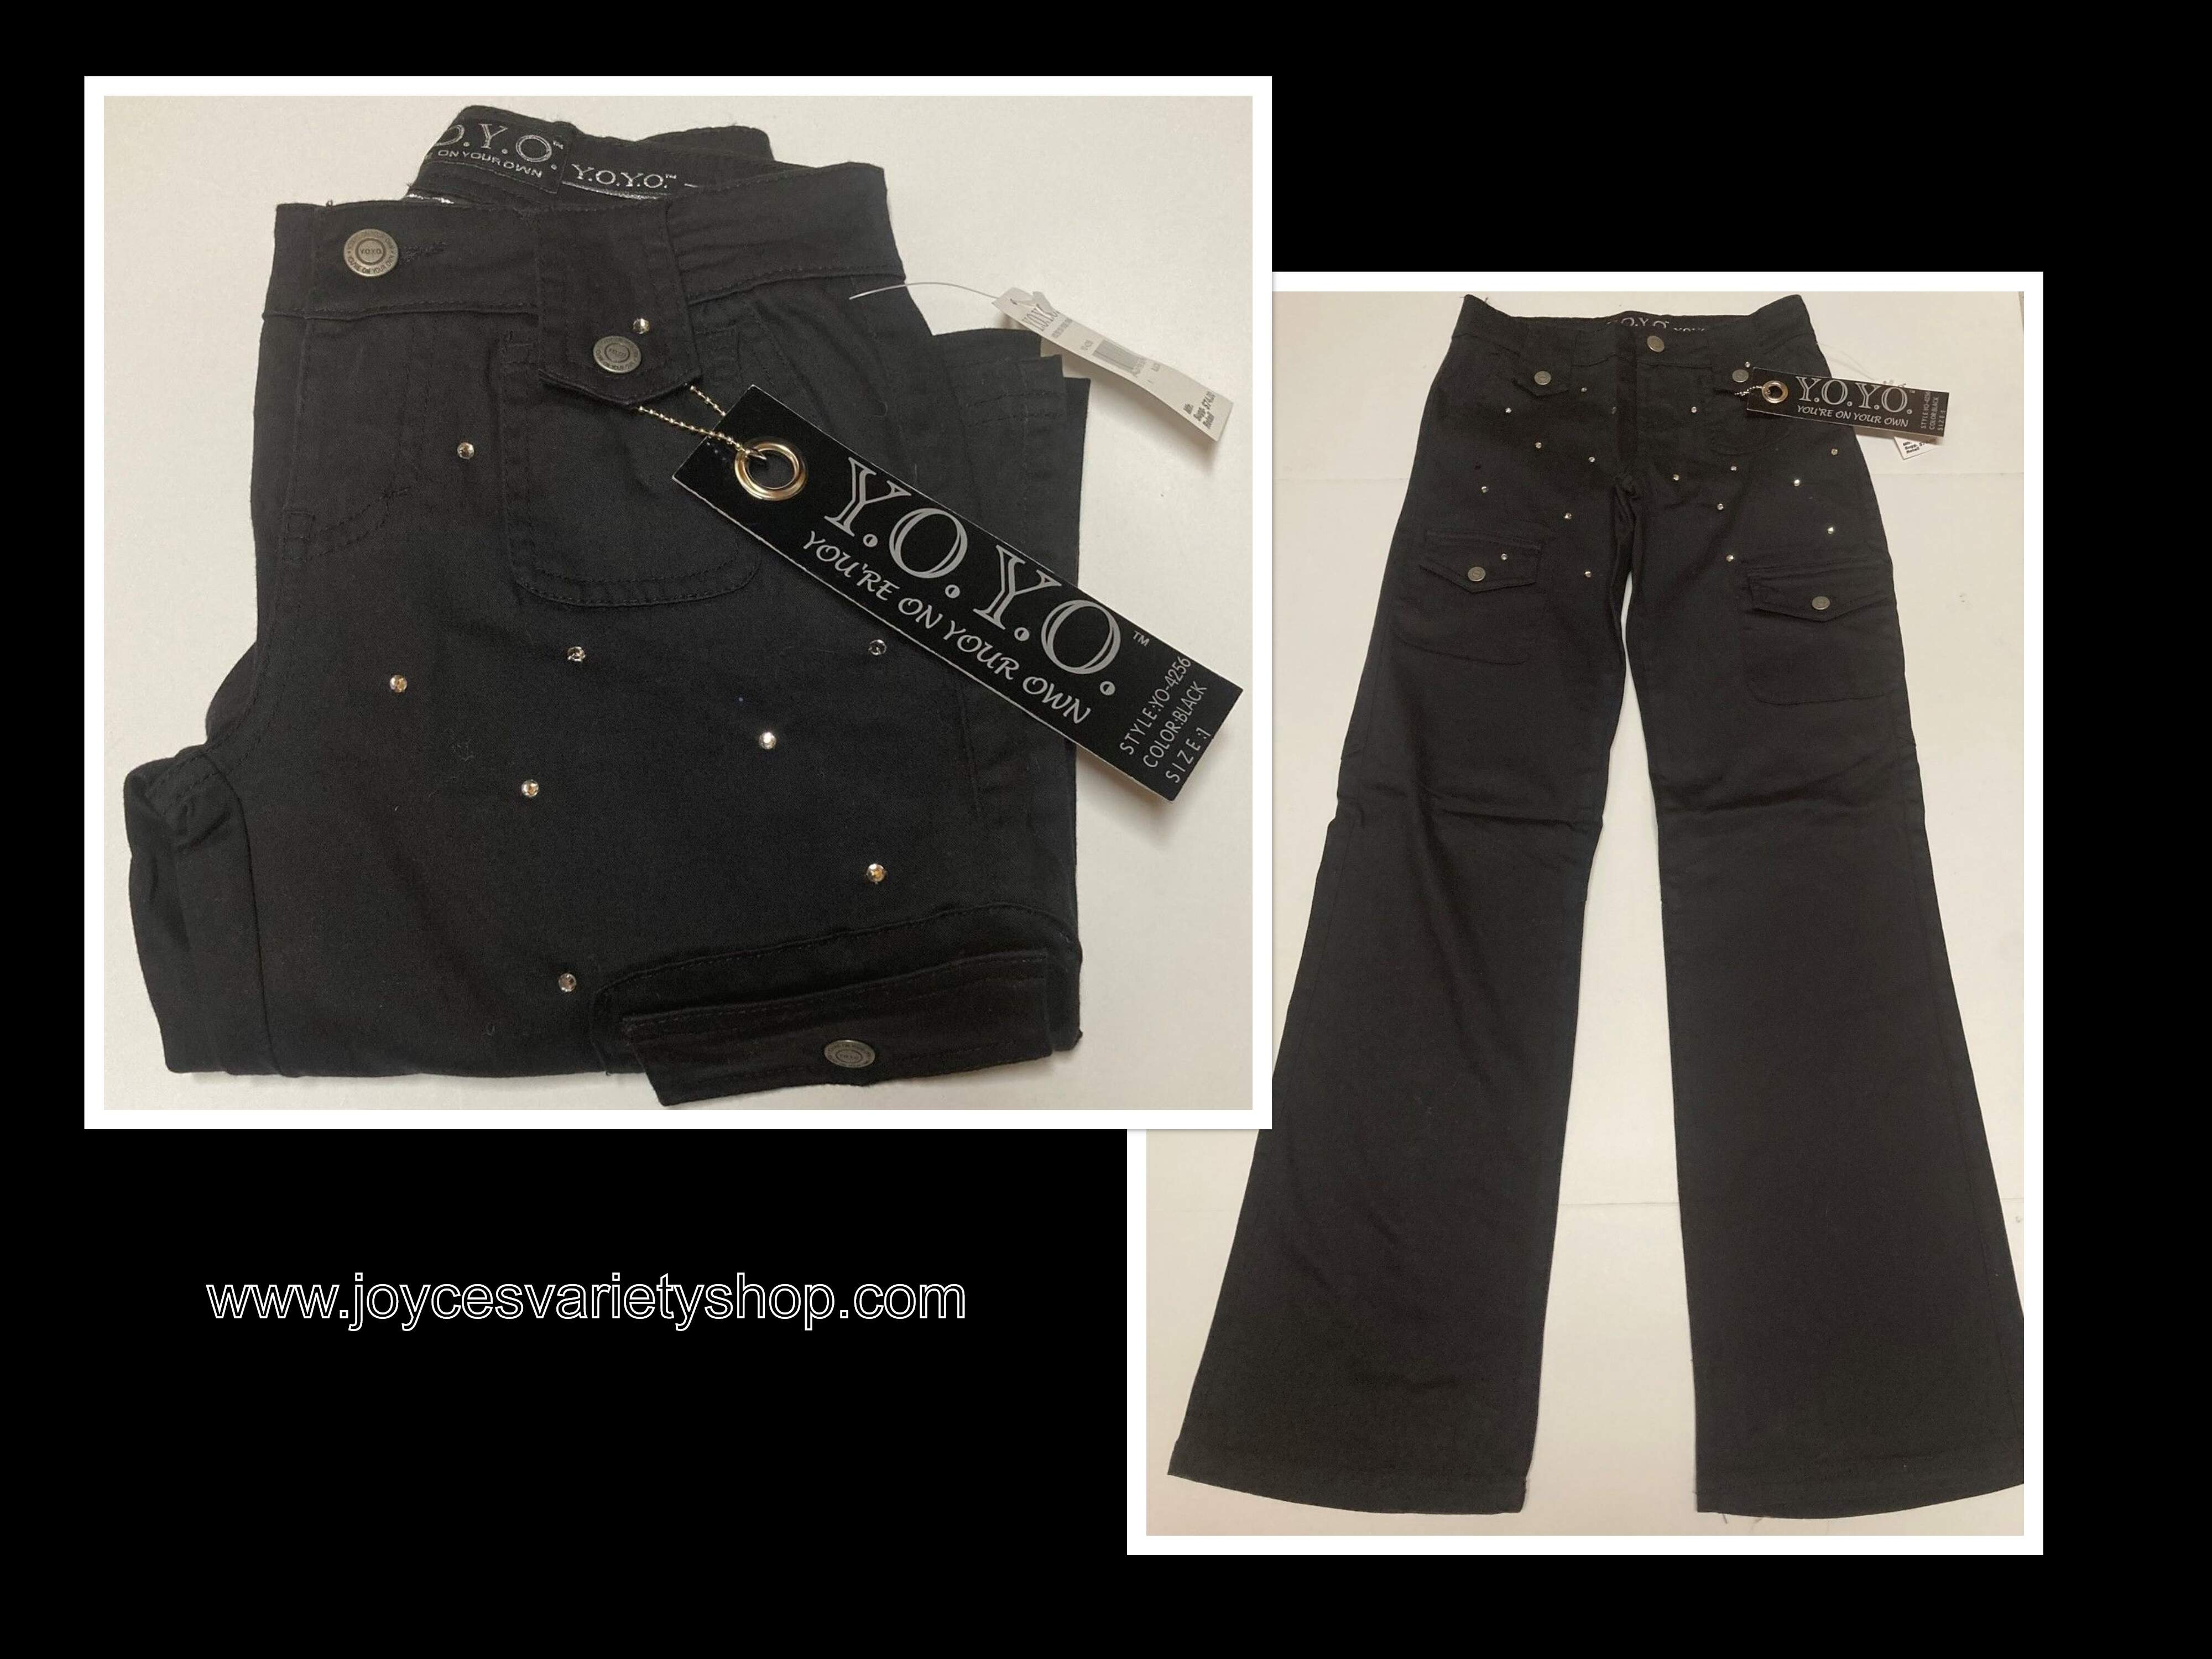 Y.O.Y.O (Your On Your Own) Black Jeans Indigo Stretch Design Various Sizes